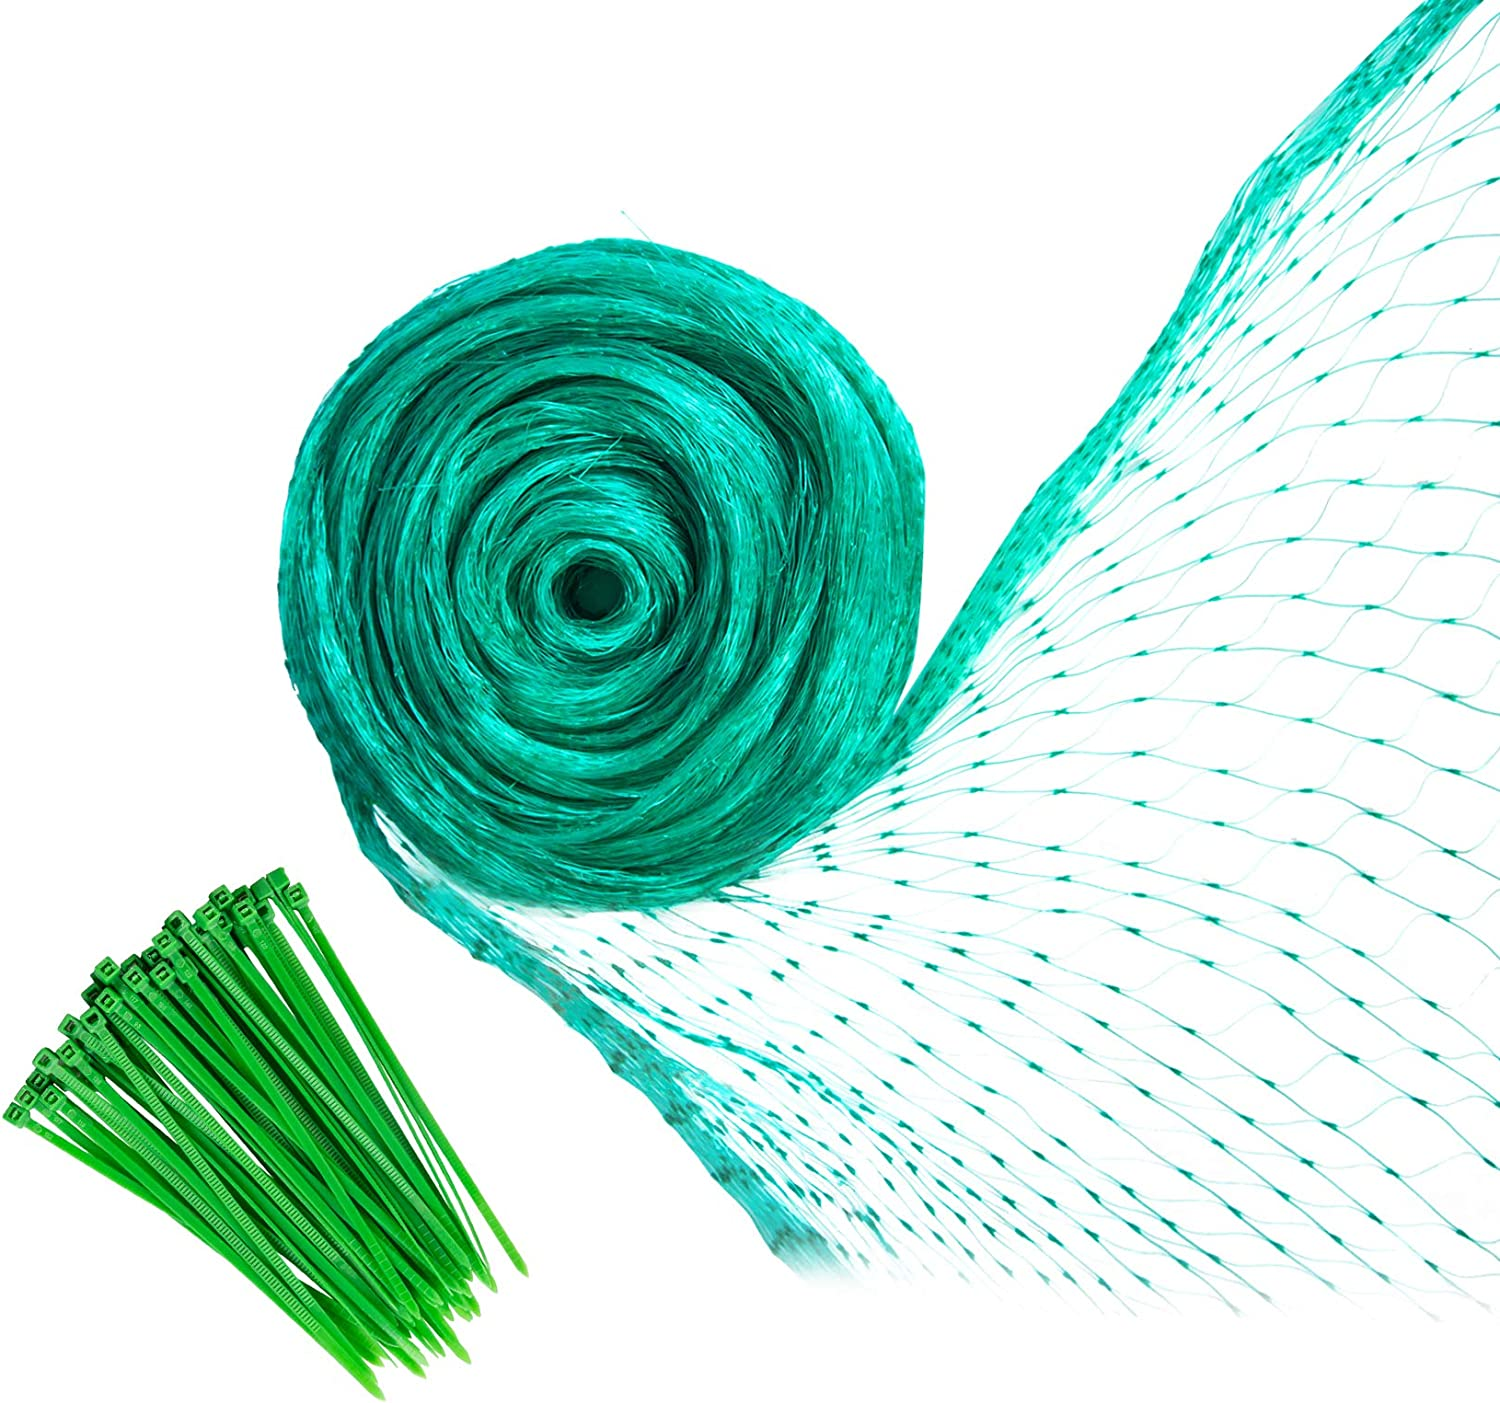 YHmall Bird Netting, 13 x 33 Feet Reusable Heavy Duty Fruit Tree Netting, Garden Netting Protect Fruit Trees Blueberries Plants and Vegetables from Birds and Animals (Green, 50 Pcs Cable Ties)